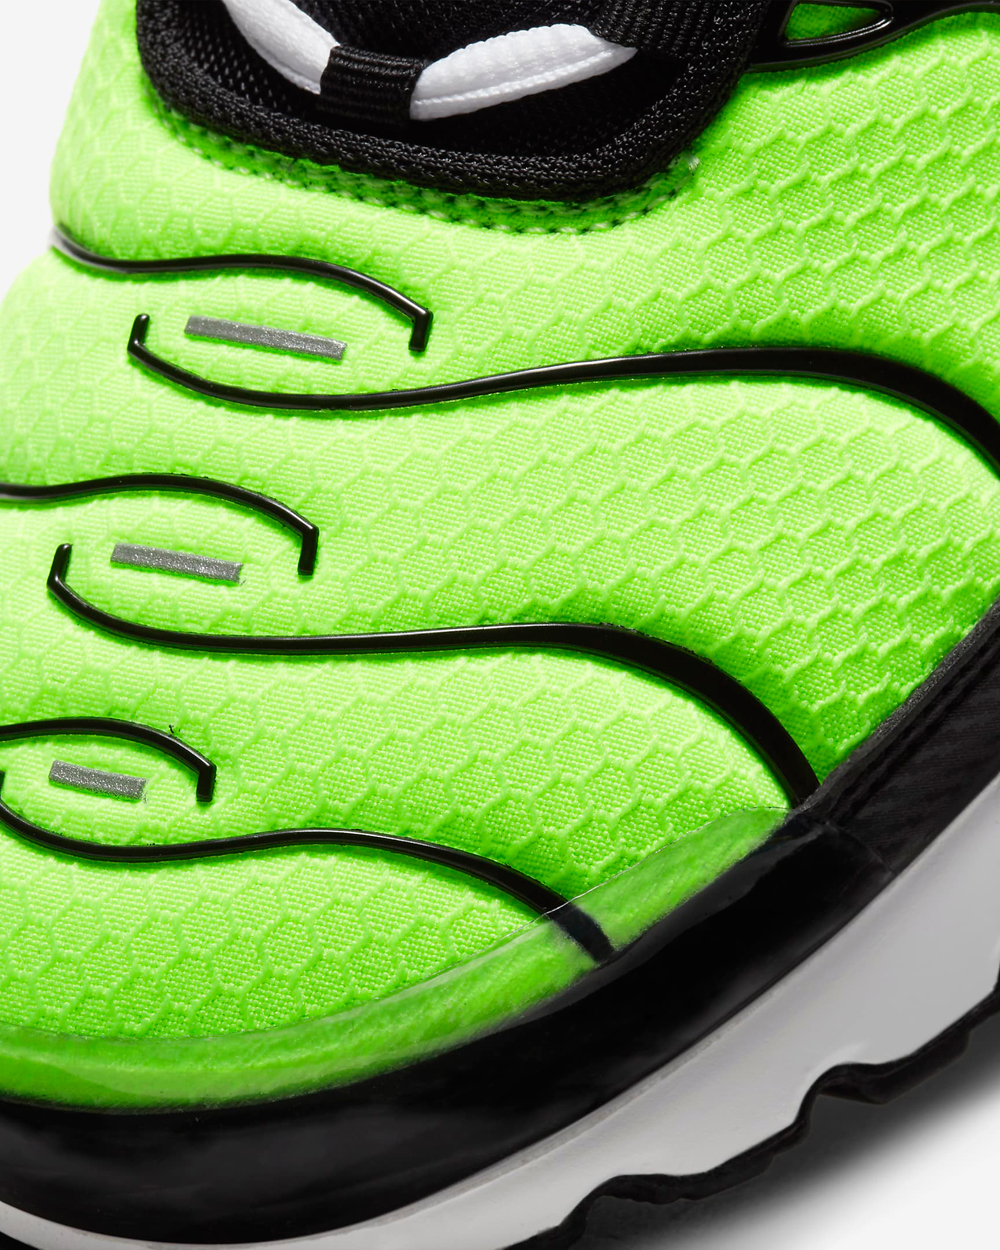 nike-air-max-plus-hot-lime-release-date-price-where-to-buy-7